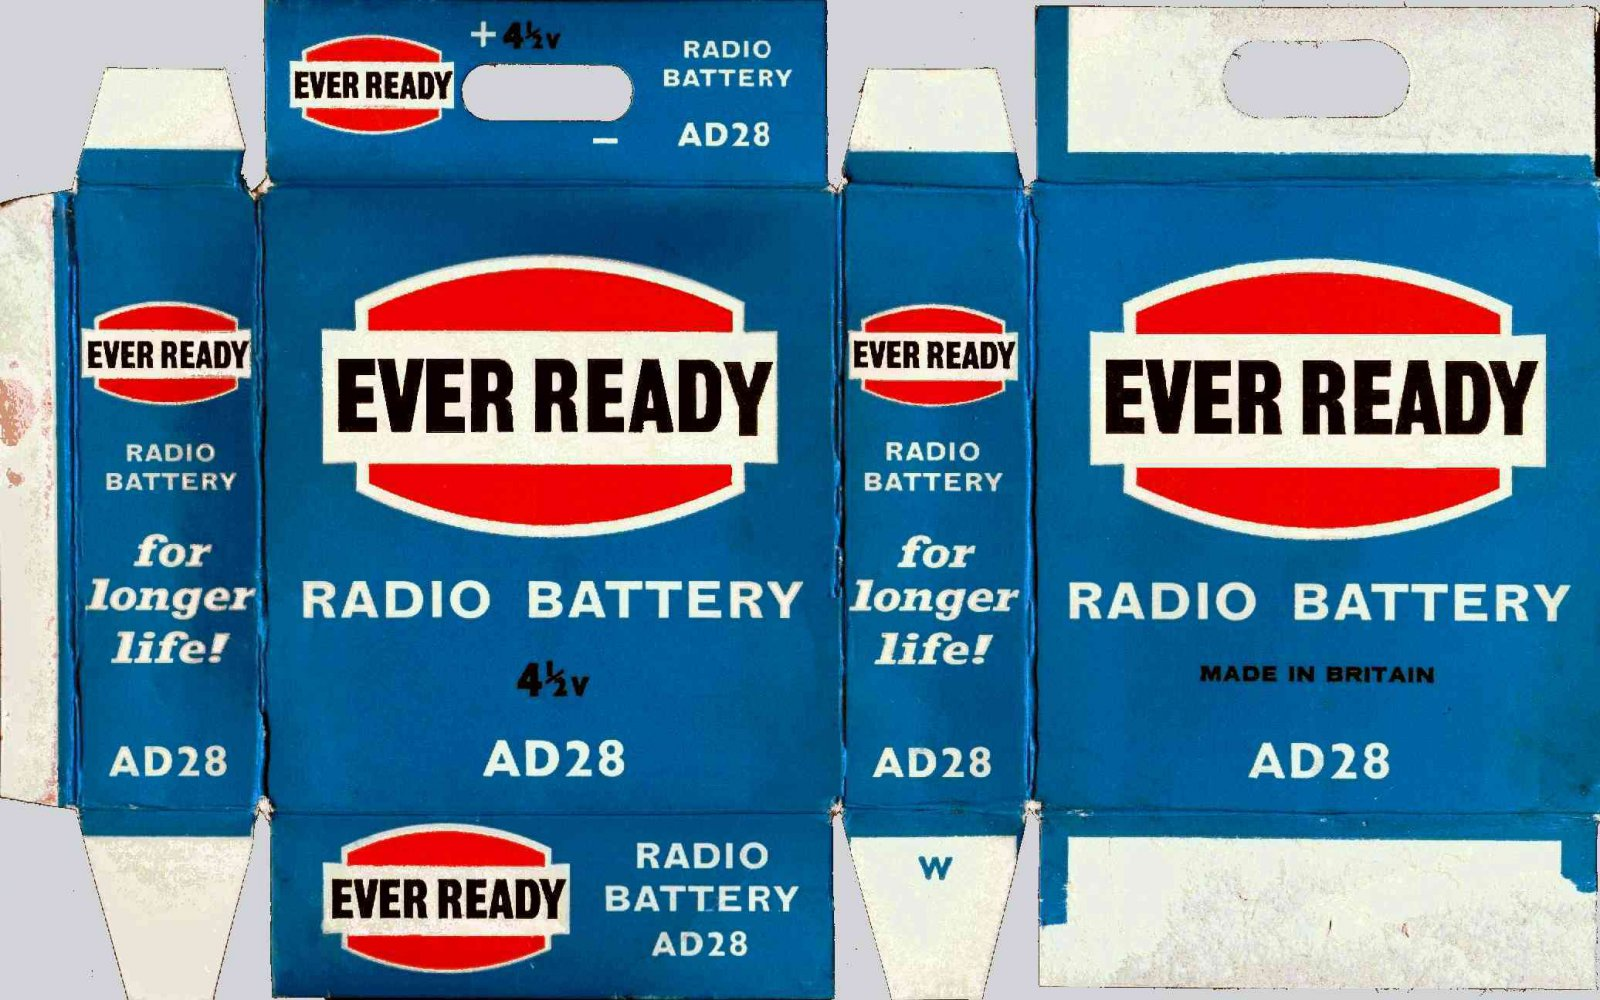 everready ad28.jpg